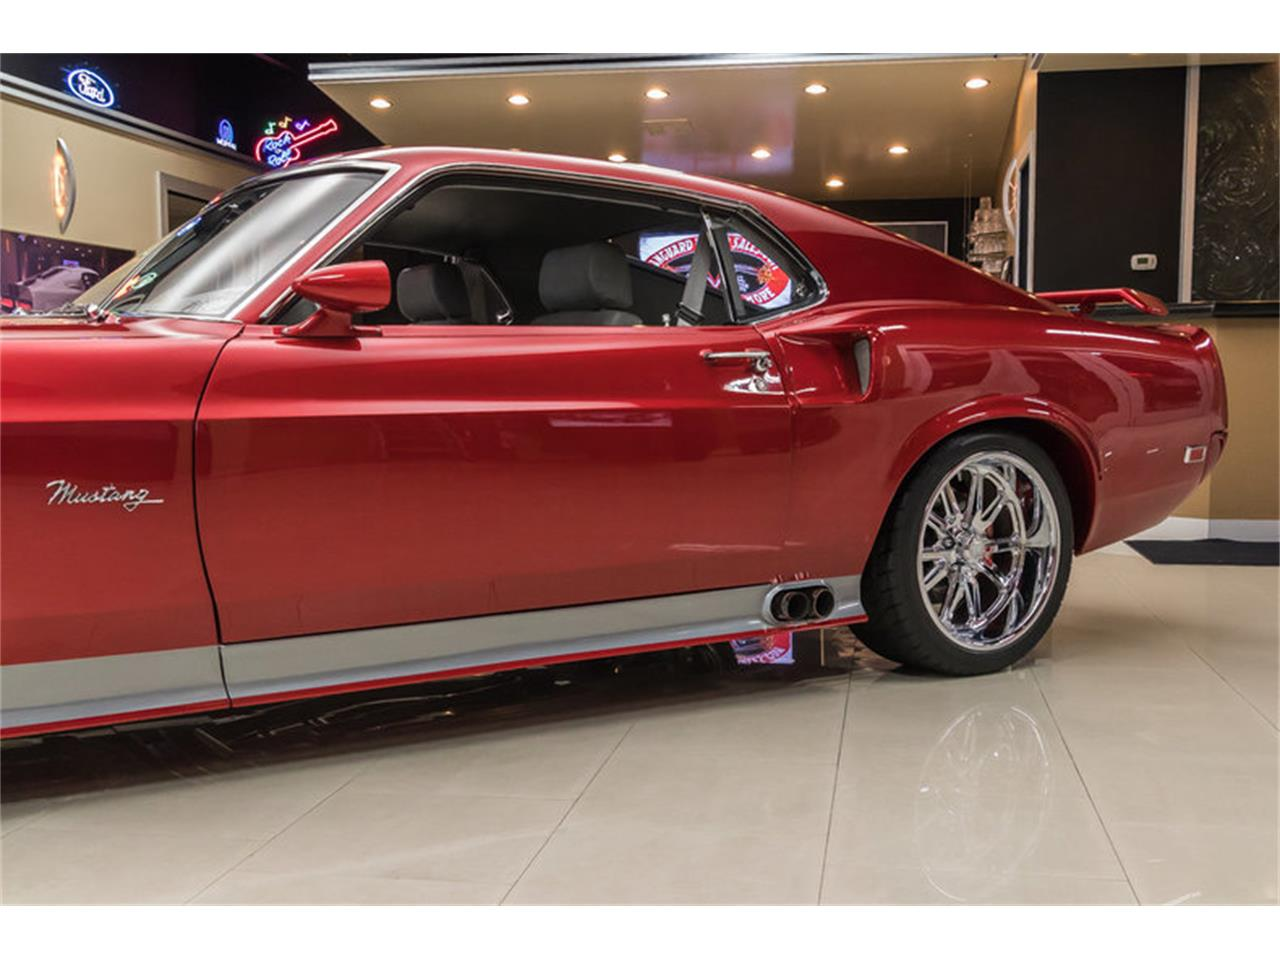 Large Picture of 1969 Ford Mustang Fastback Restomod located in Michigan Offered by Vanguard Motor Sales - L6C8